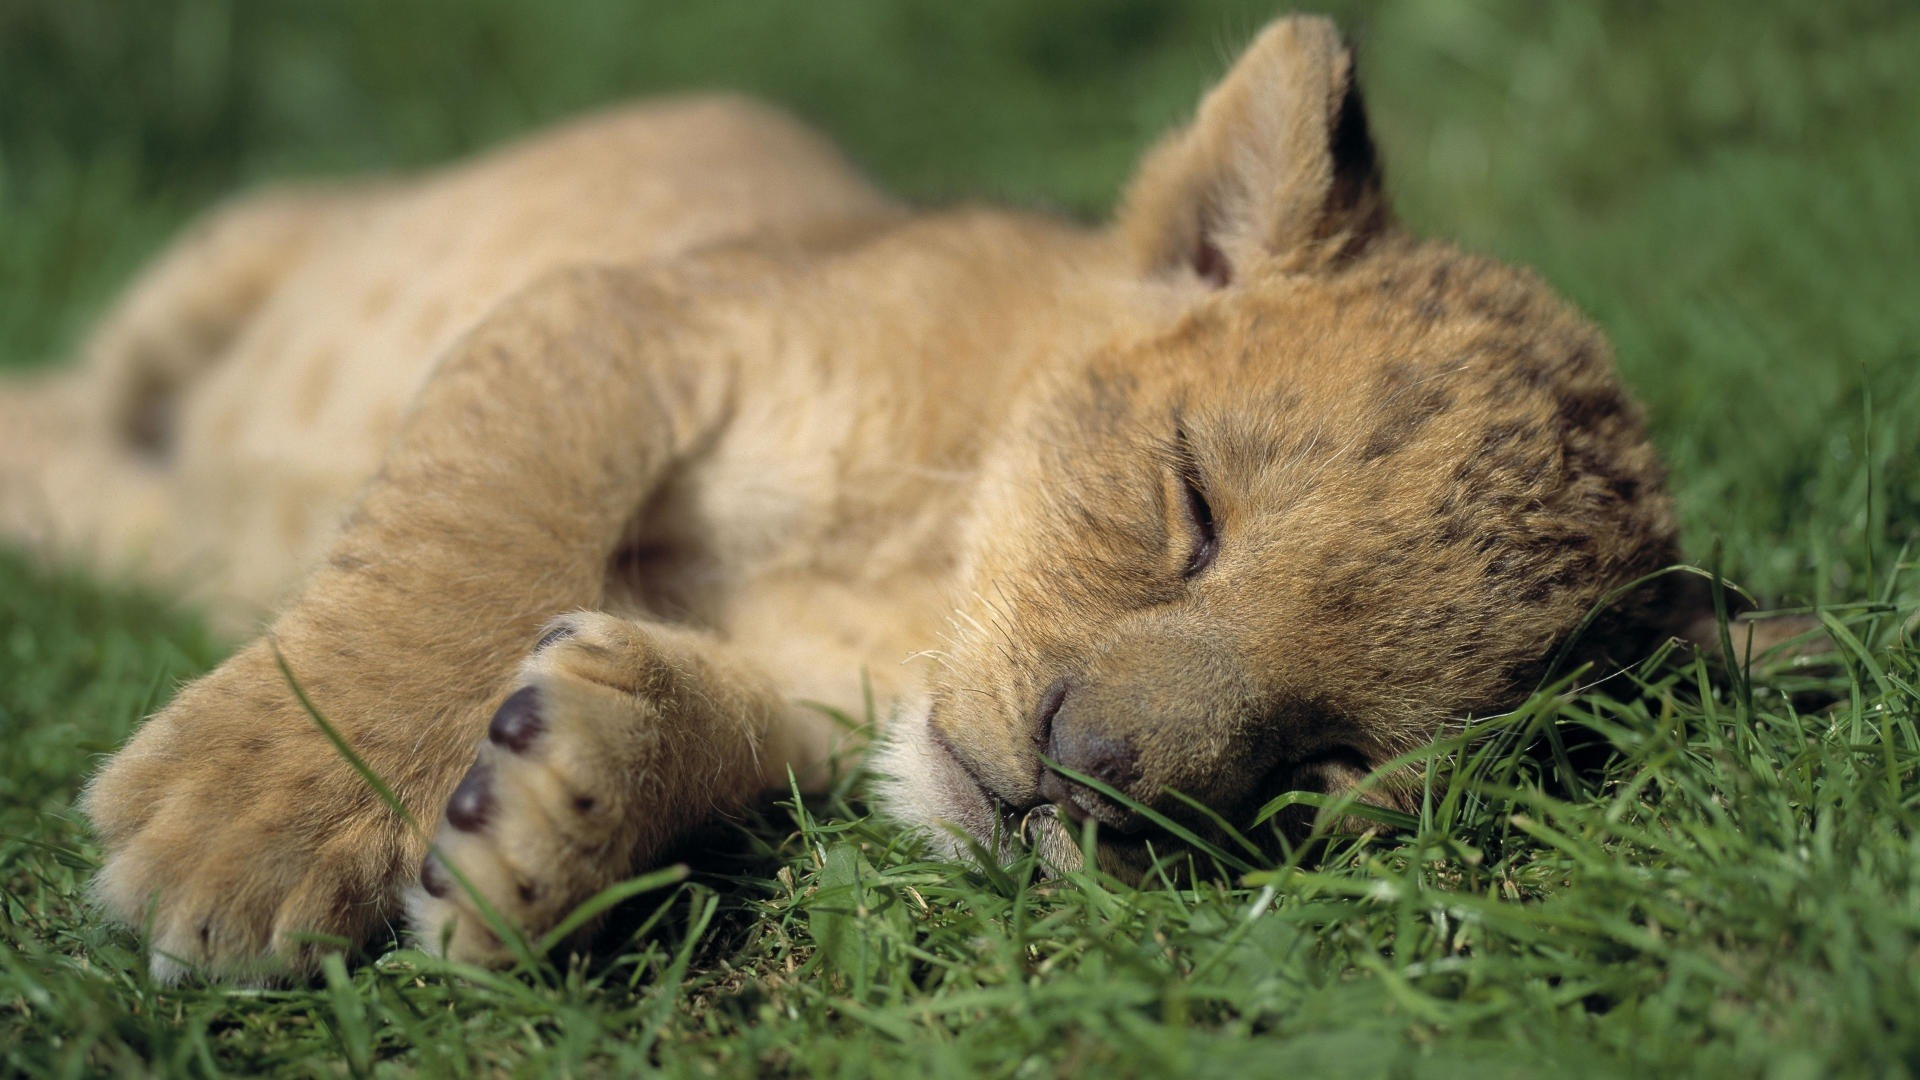 Lion Wallpapers Free Download new wild animals cub HD Desktop Images